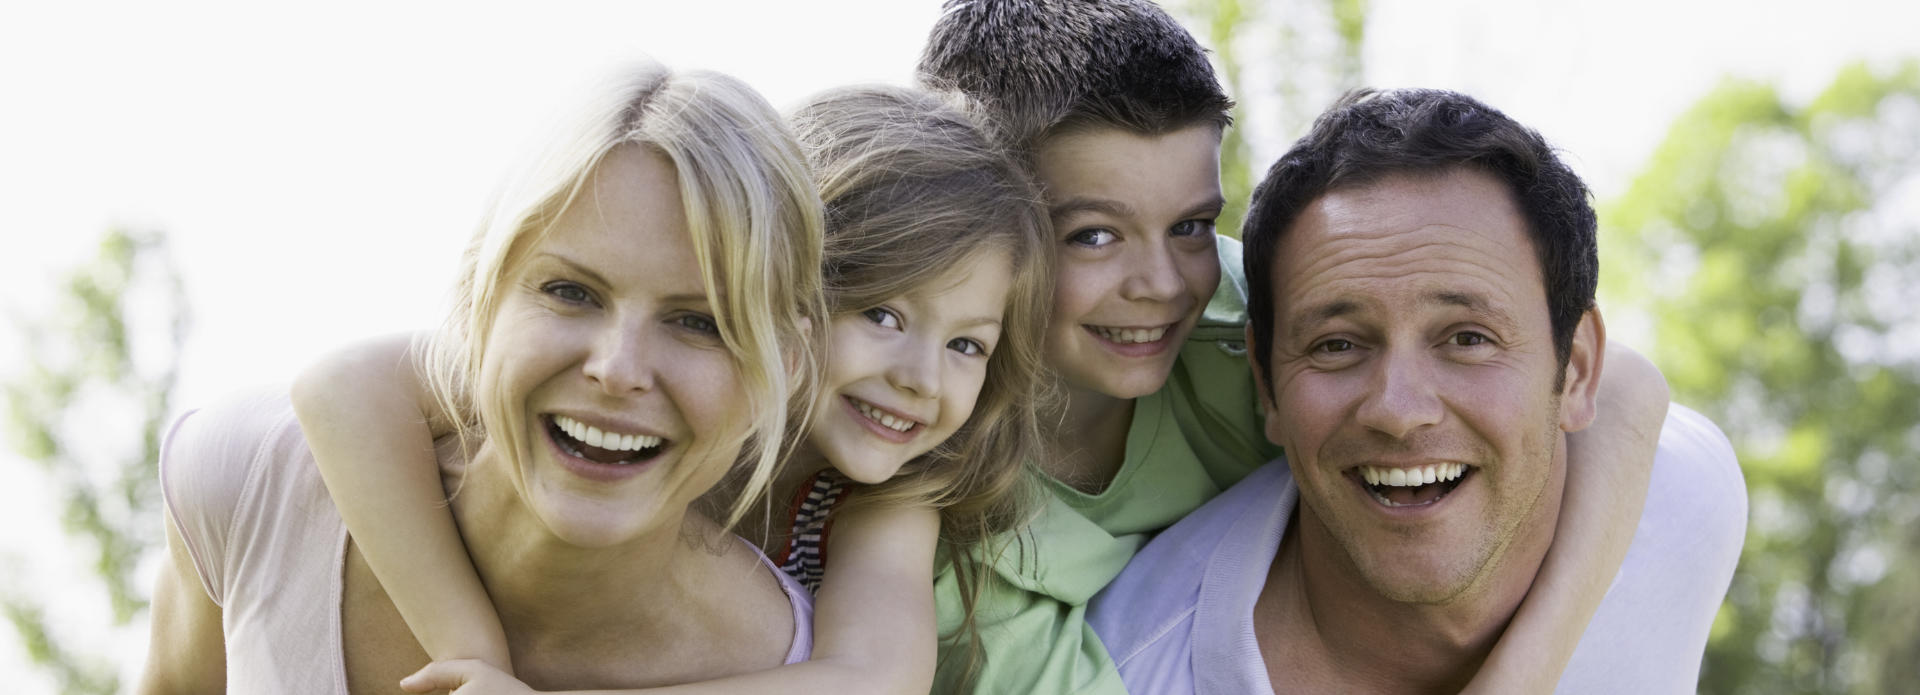 smiling family with children